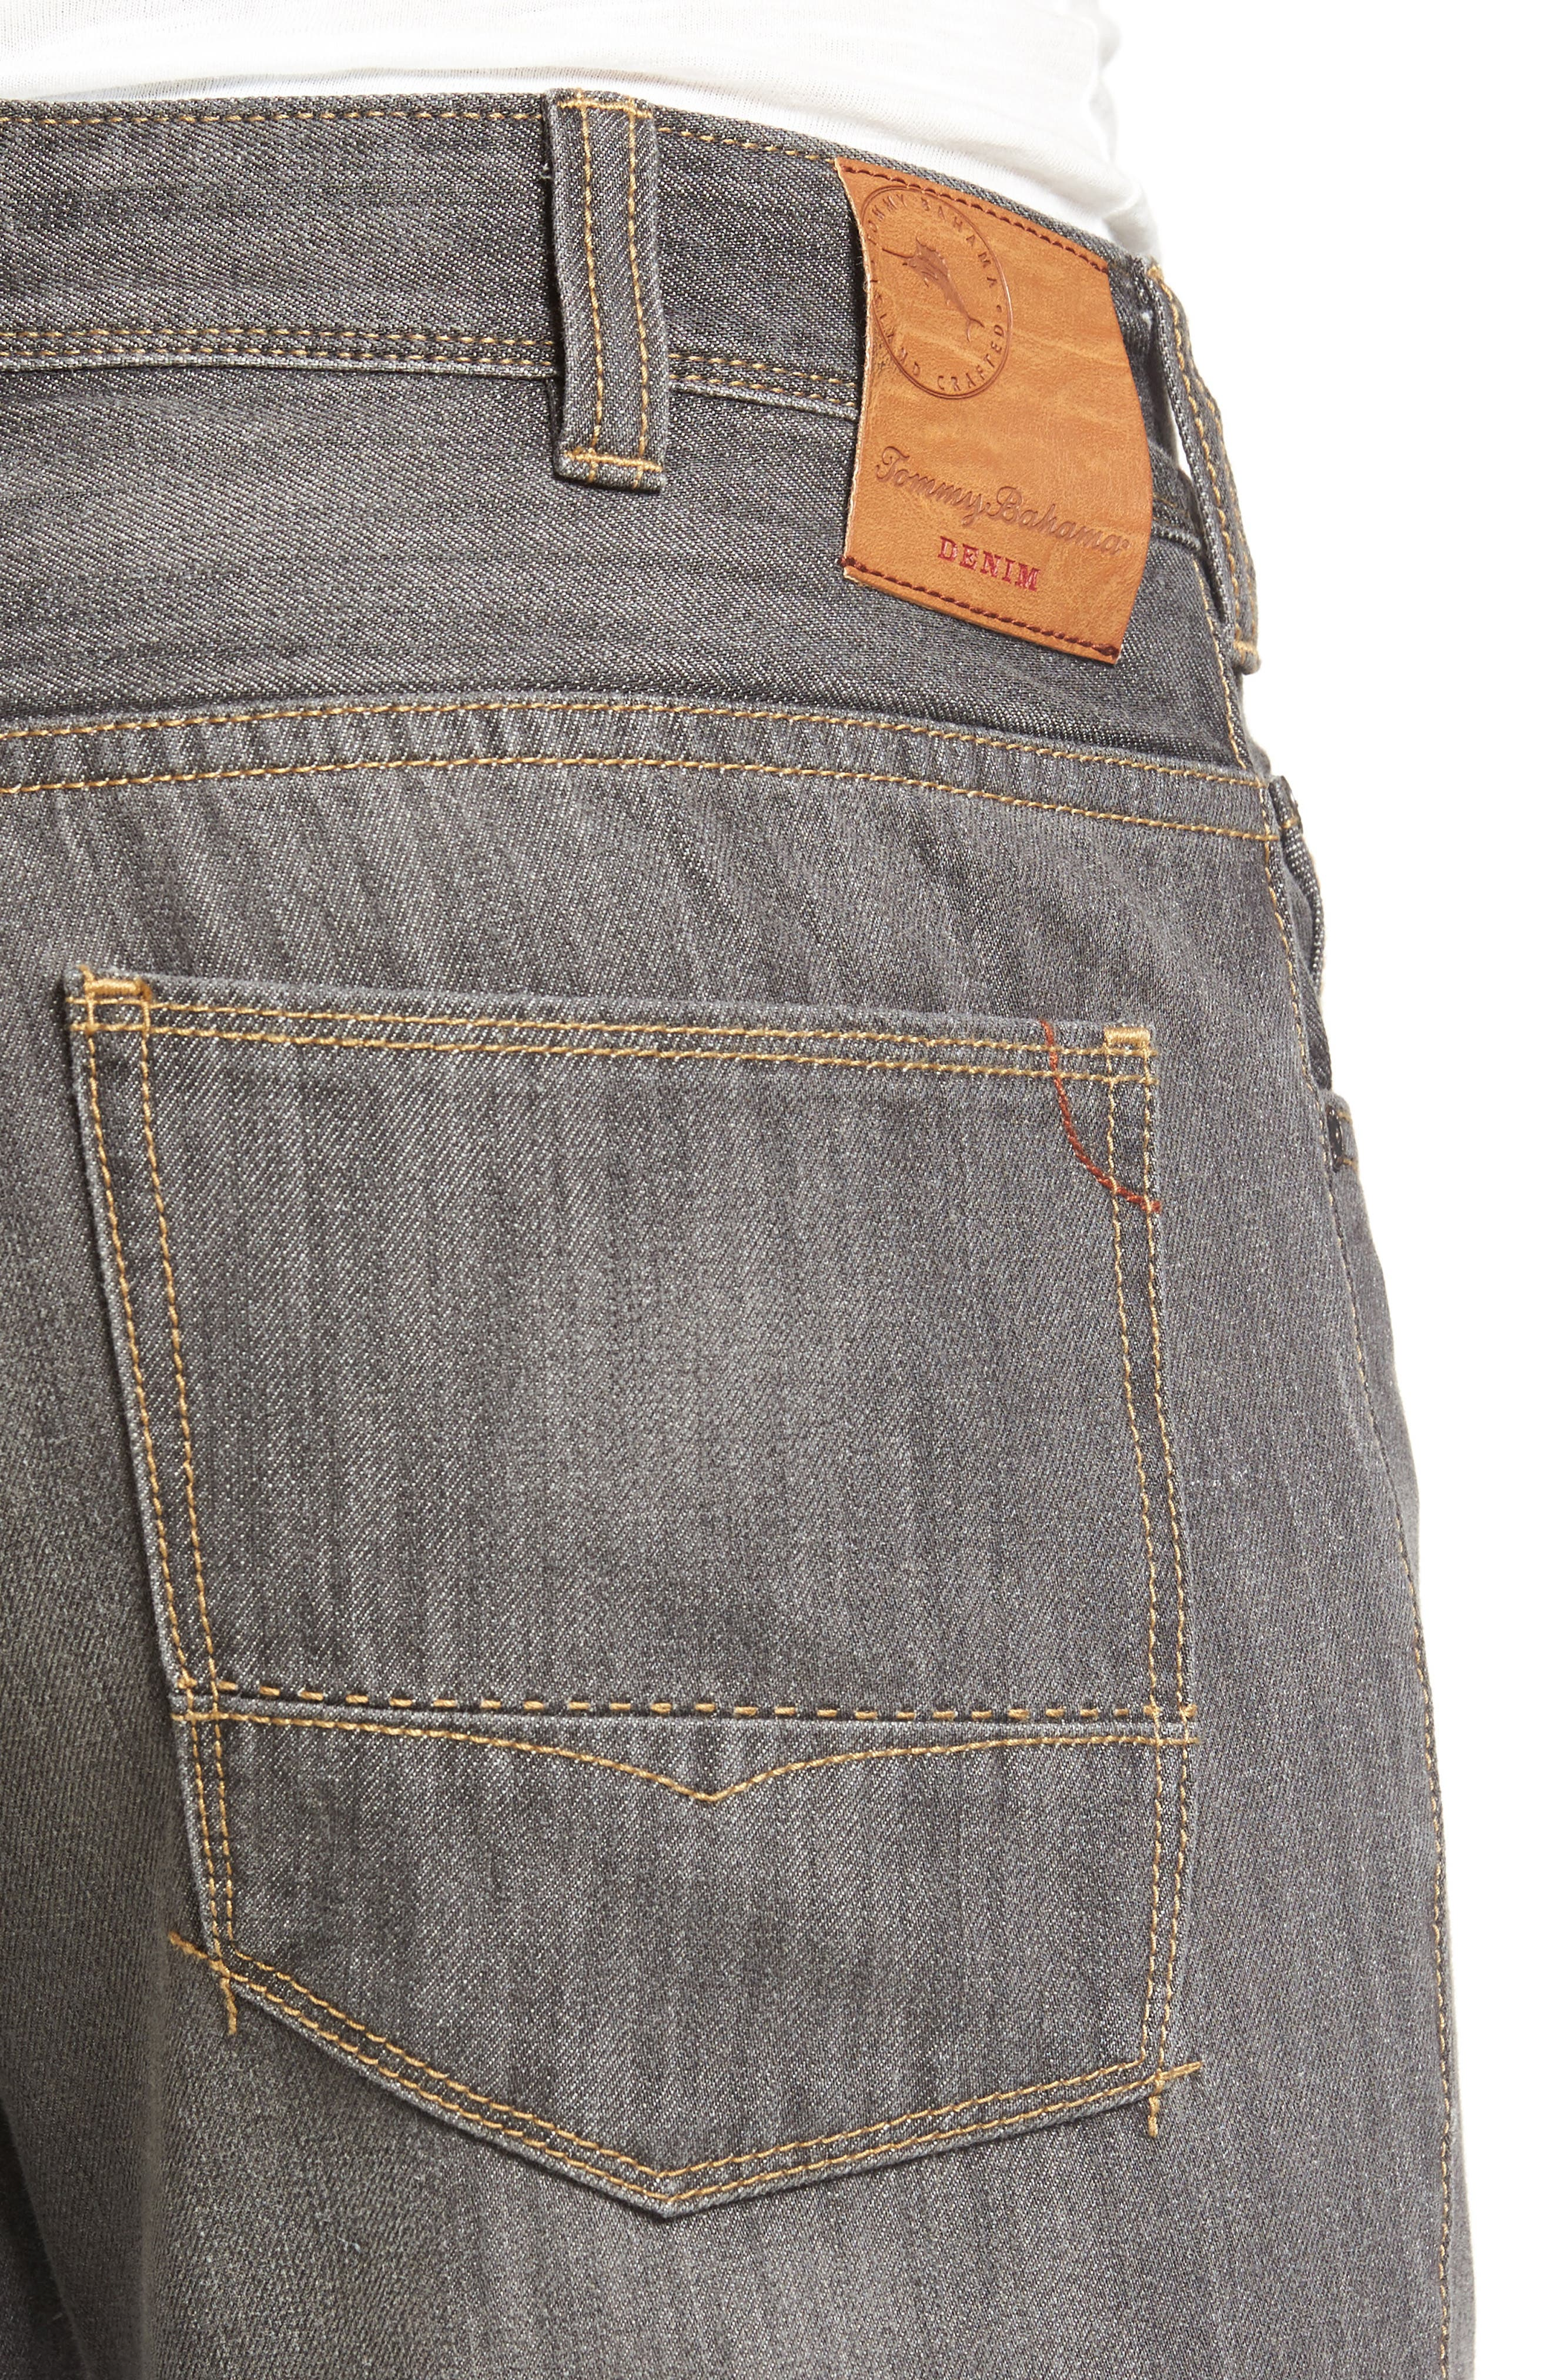 Barbados Straight Leg Jeans,                             Alternate thumbnail 4, color,                             Vintage Grey Wash